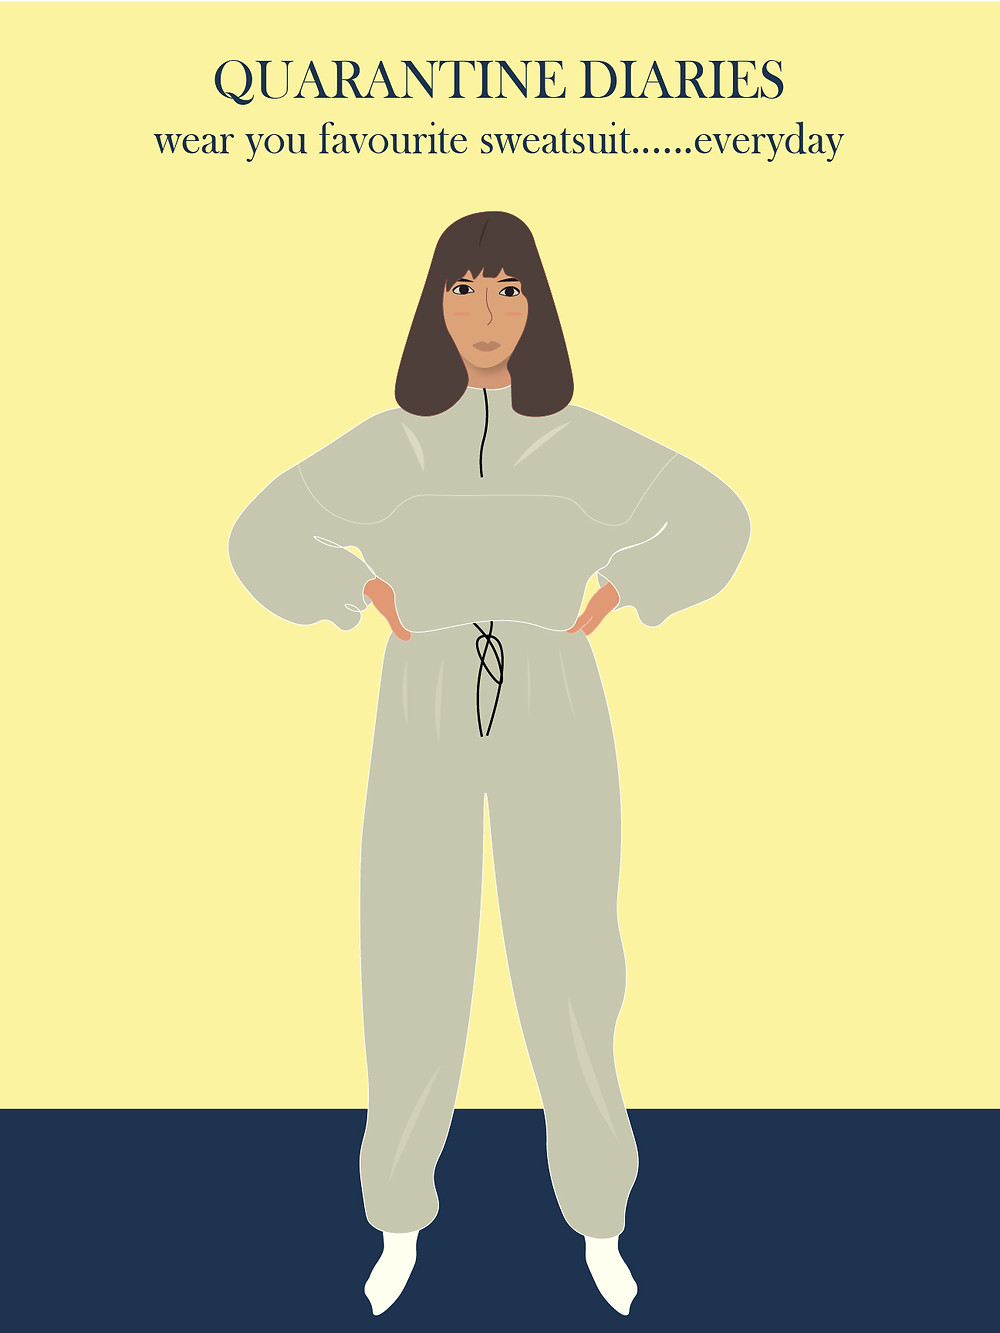 A digital illustration form quarantine diaries about wearing the same sweatsuit everyday